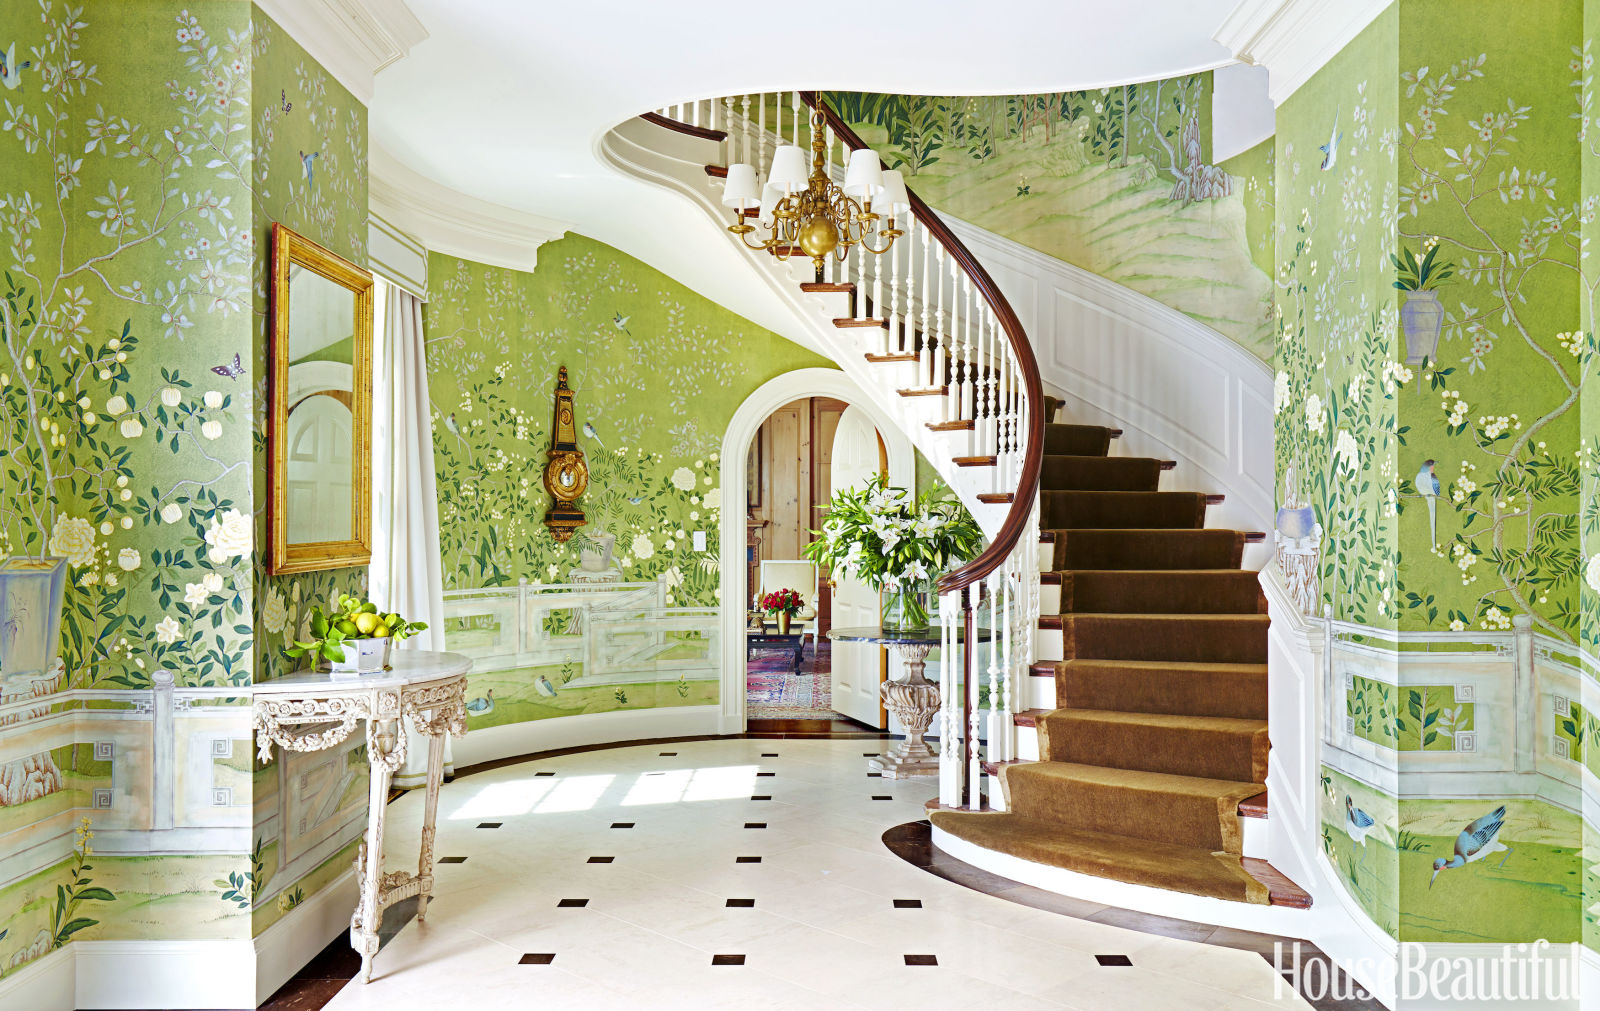 How To Get The Look: Glamorously Decorated Home Entrances